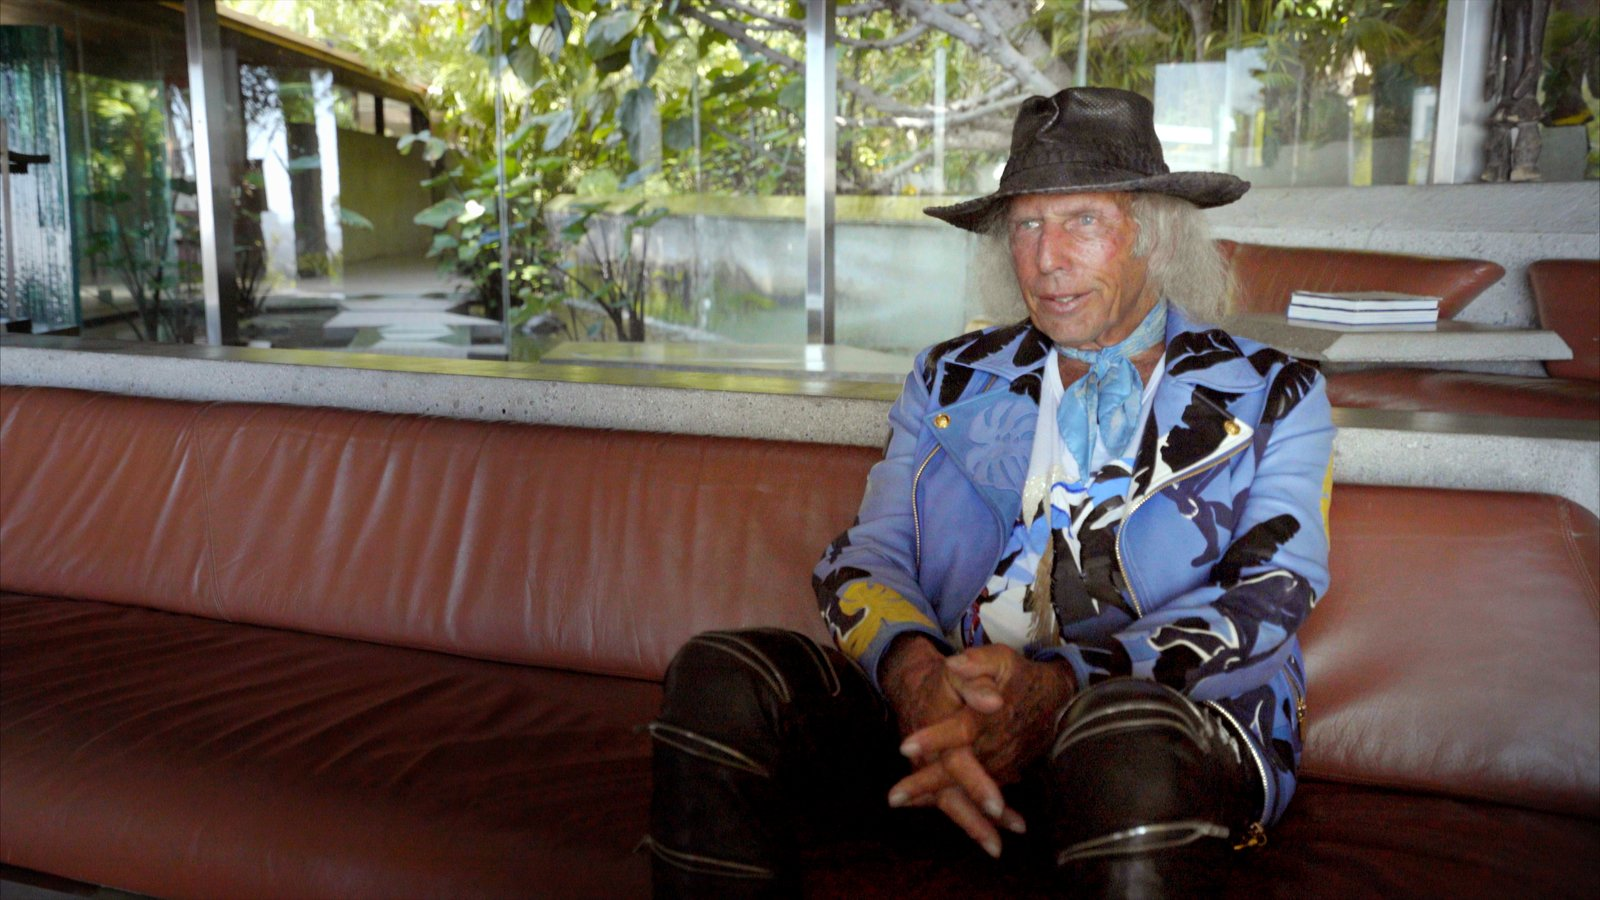 James Goldstein on his custom designed sofas. #johnlautner #garcia #house #iconichouses Behind the Scenes at John Lautner's Sheats-Goldstein Residence by Paige Alexus